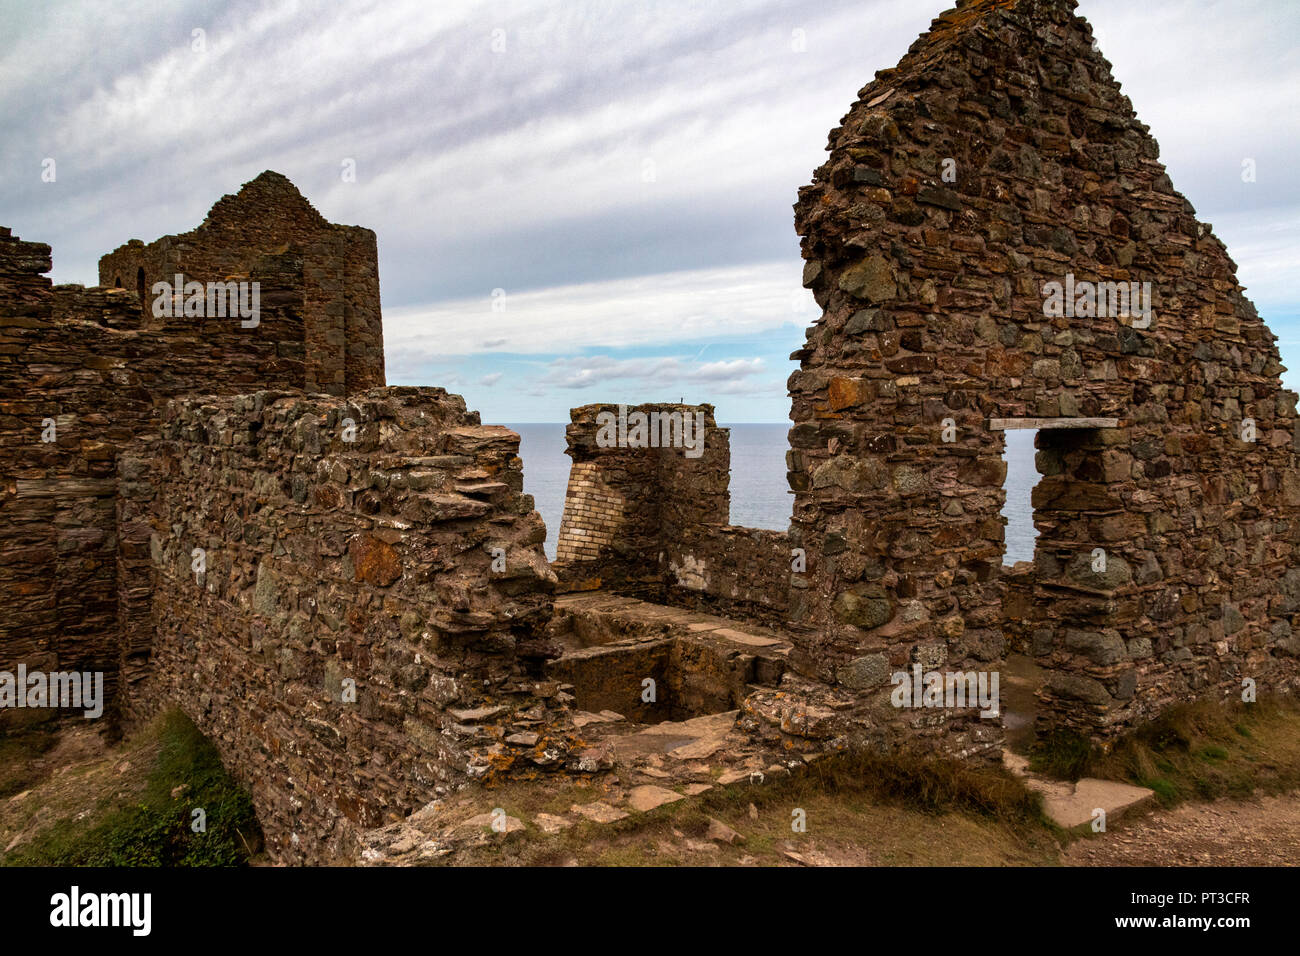 Wheal Coates Tin Mine. Ruined and partly Restored Victorian Mine Buildings. Saint Agnes, Cornwall, England. - Stock Image